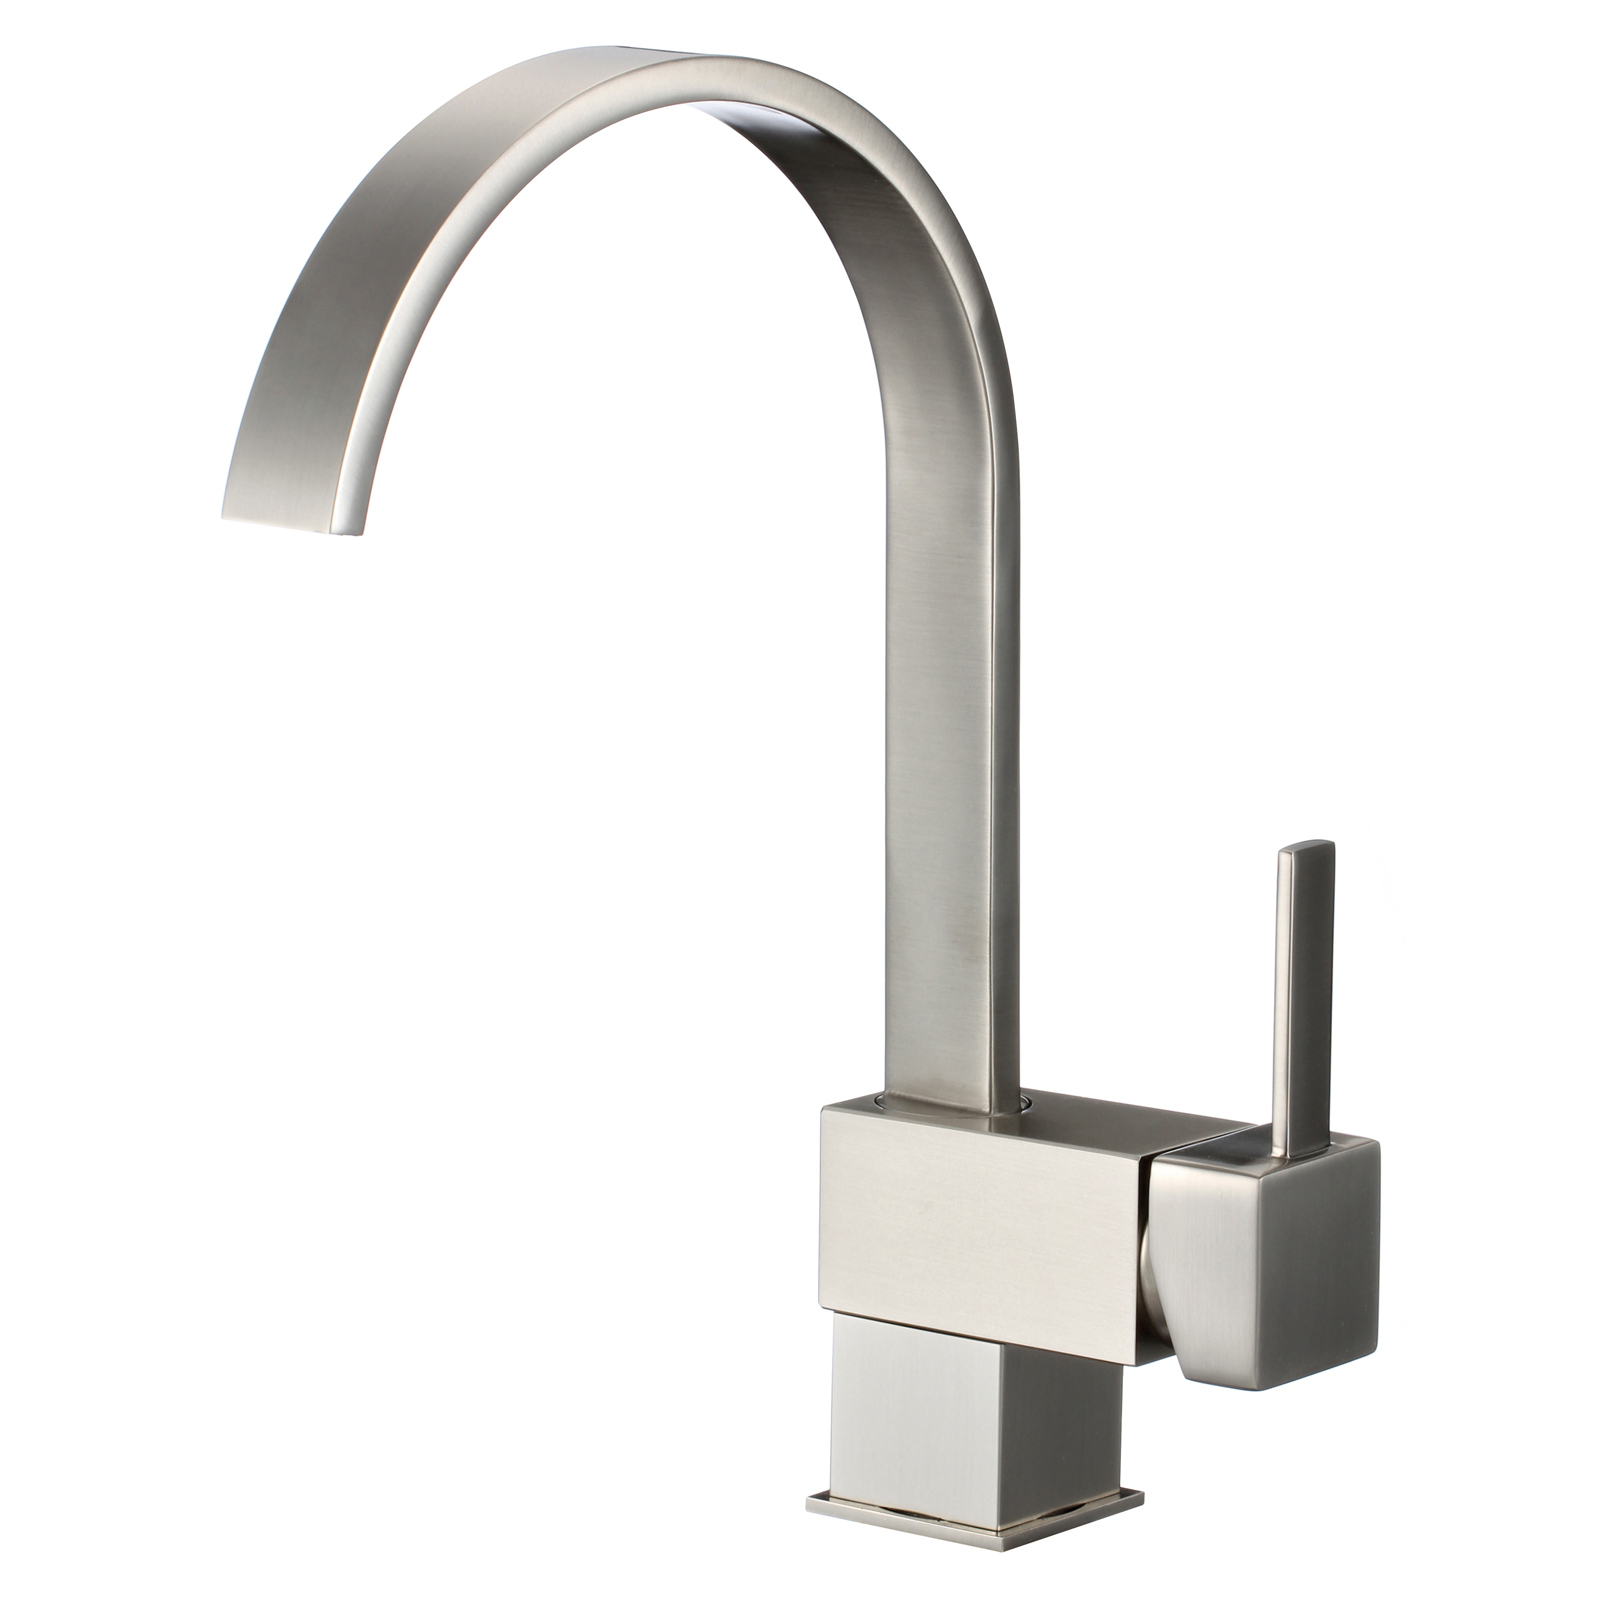 "13"" Modern Kitchen Bathroom Sink Faucet e Hole"